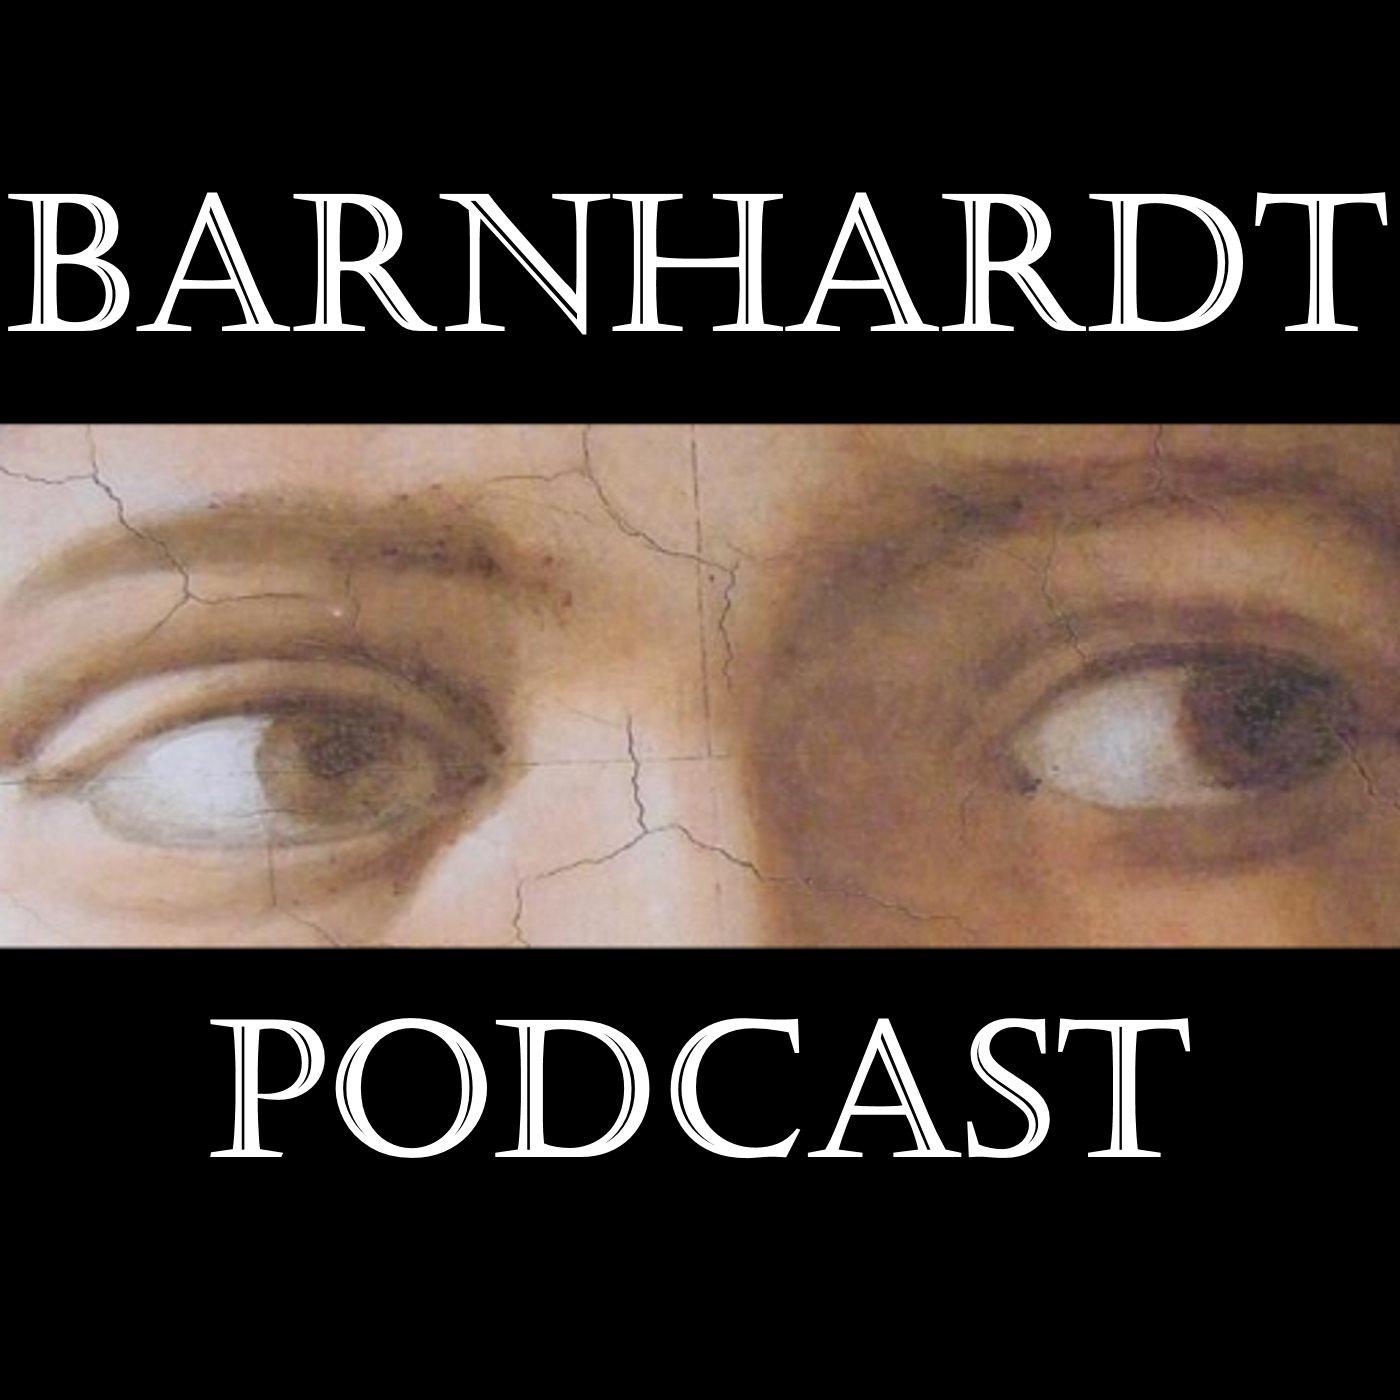 Barnhardt Podcast #039: Let Net Neutrality Die, Kill It If You Must